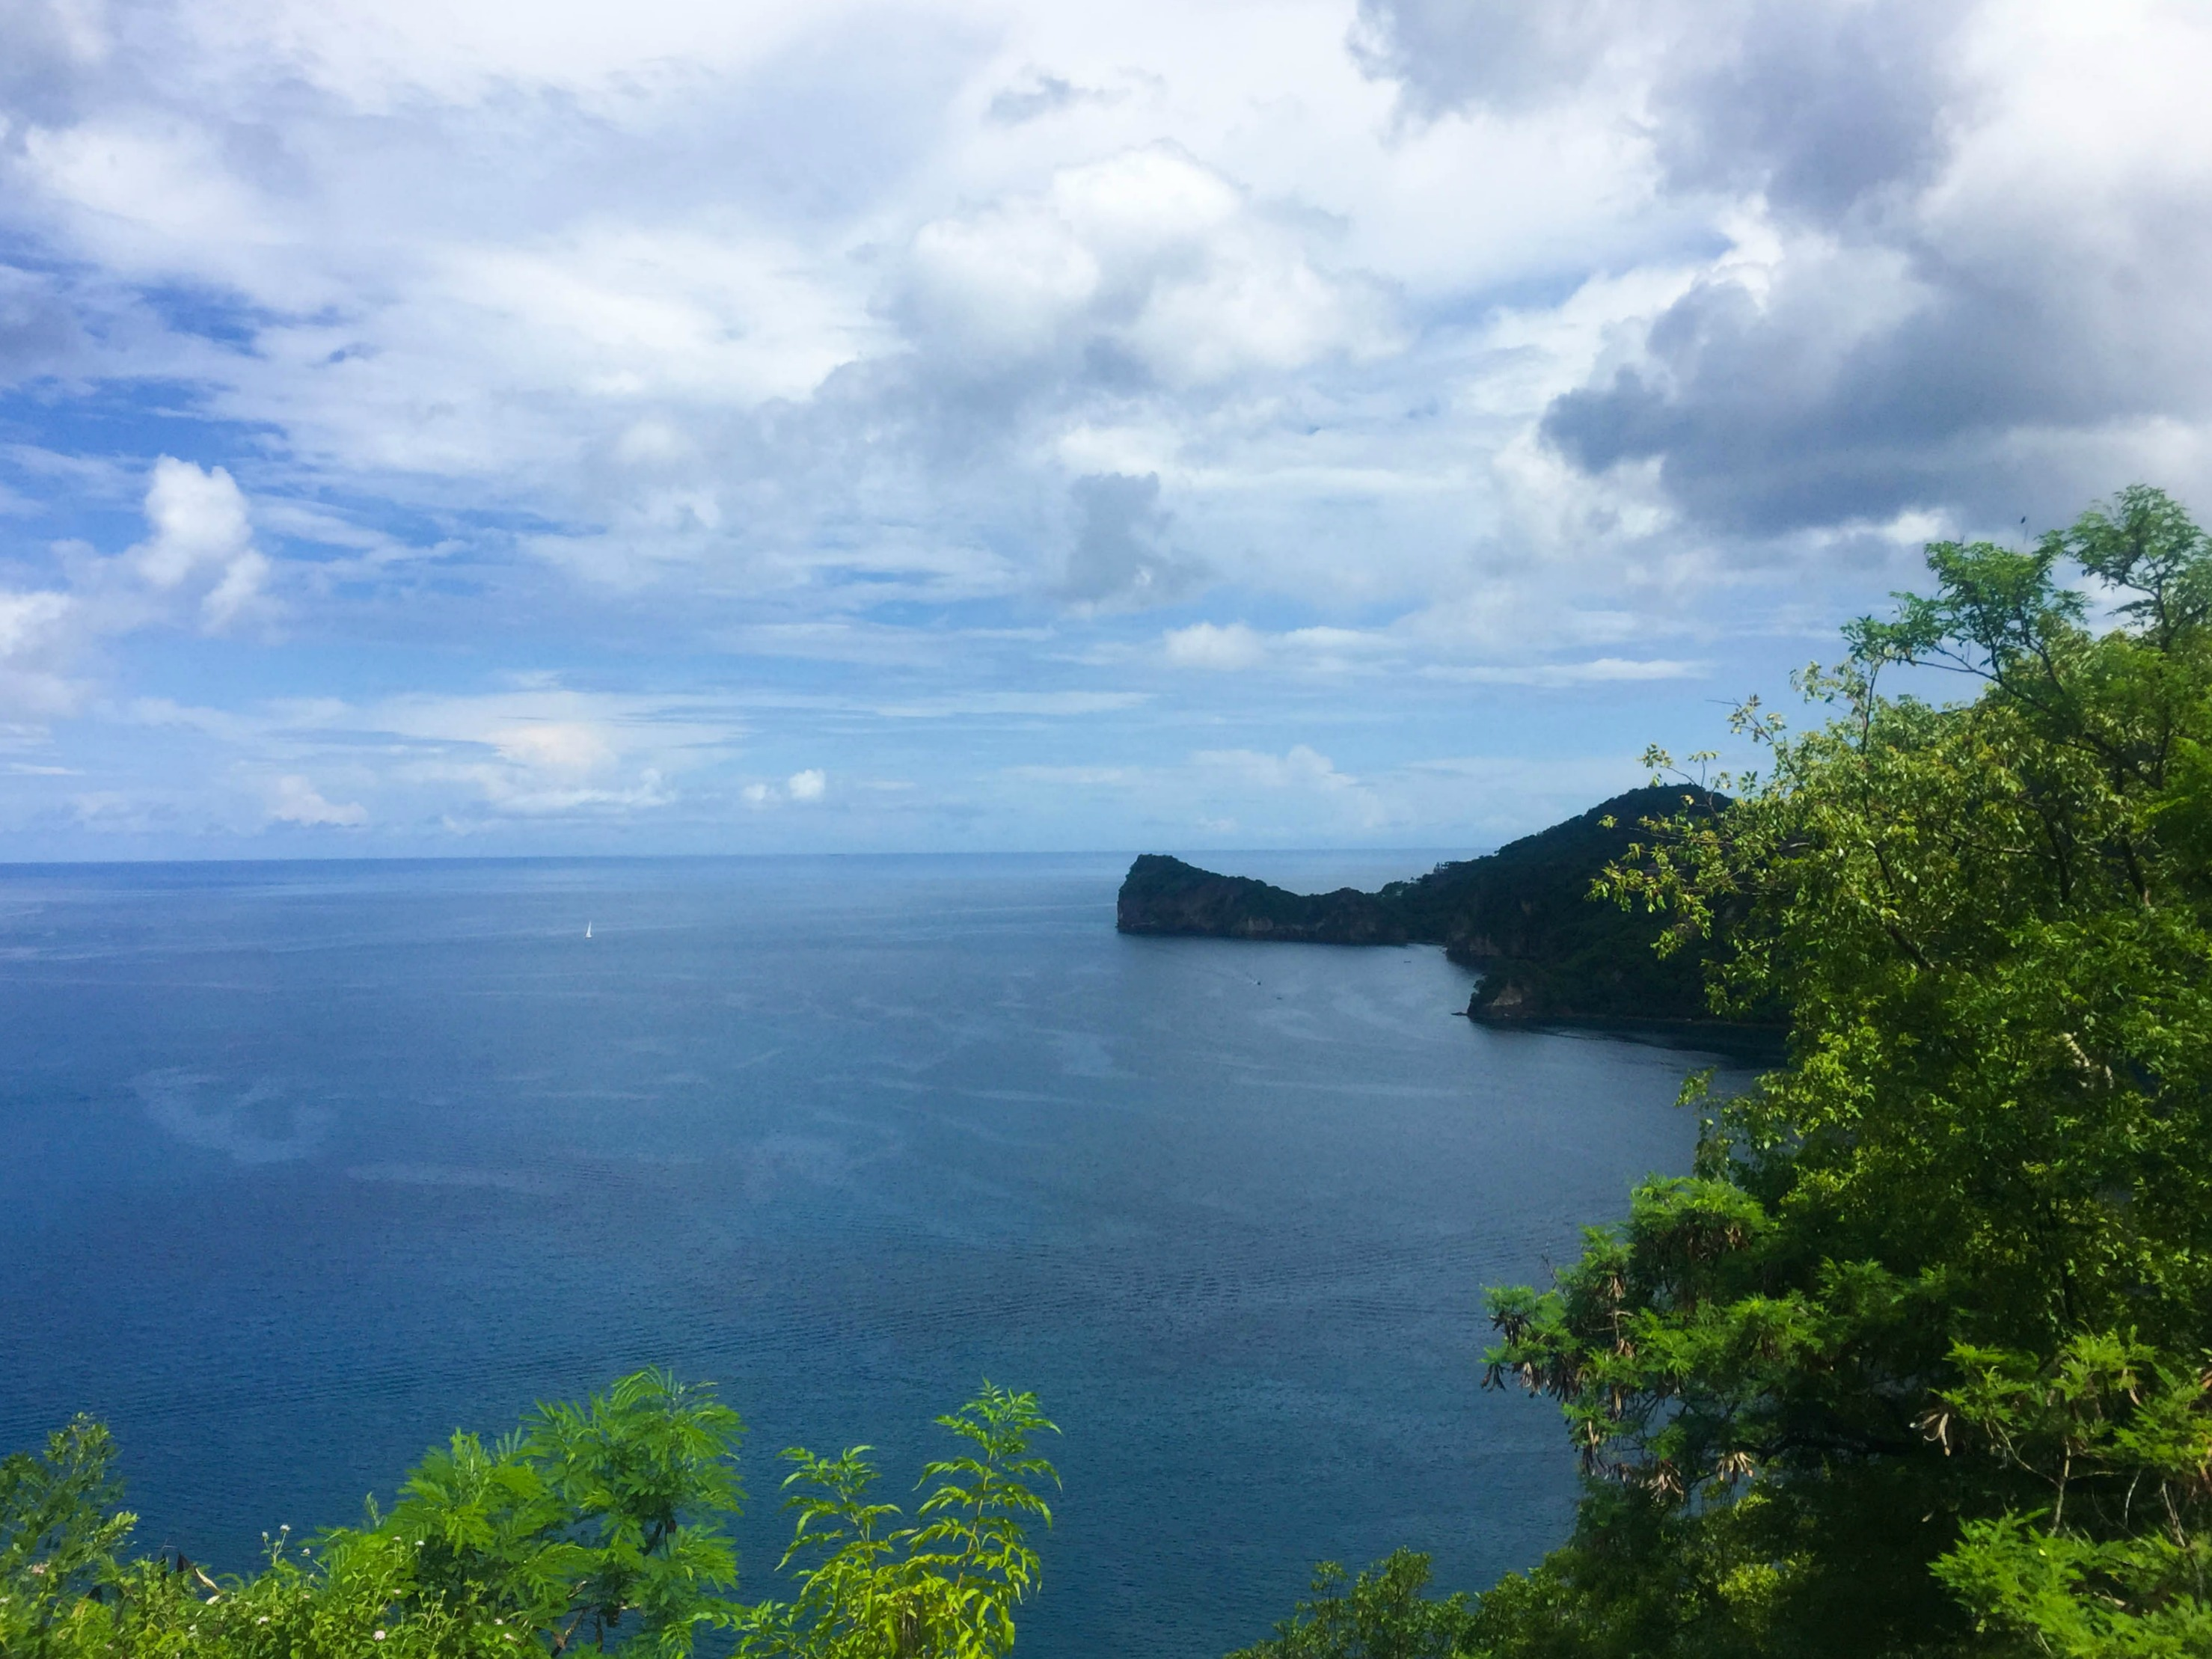 St. James Club Morgan Bay - St. Lucia Recap by lifestyle blogger Amy of Coffee Beans and Bobby Pins